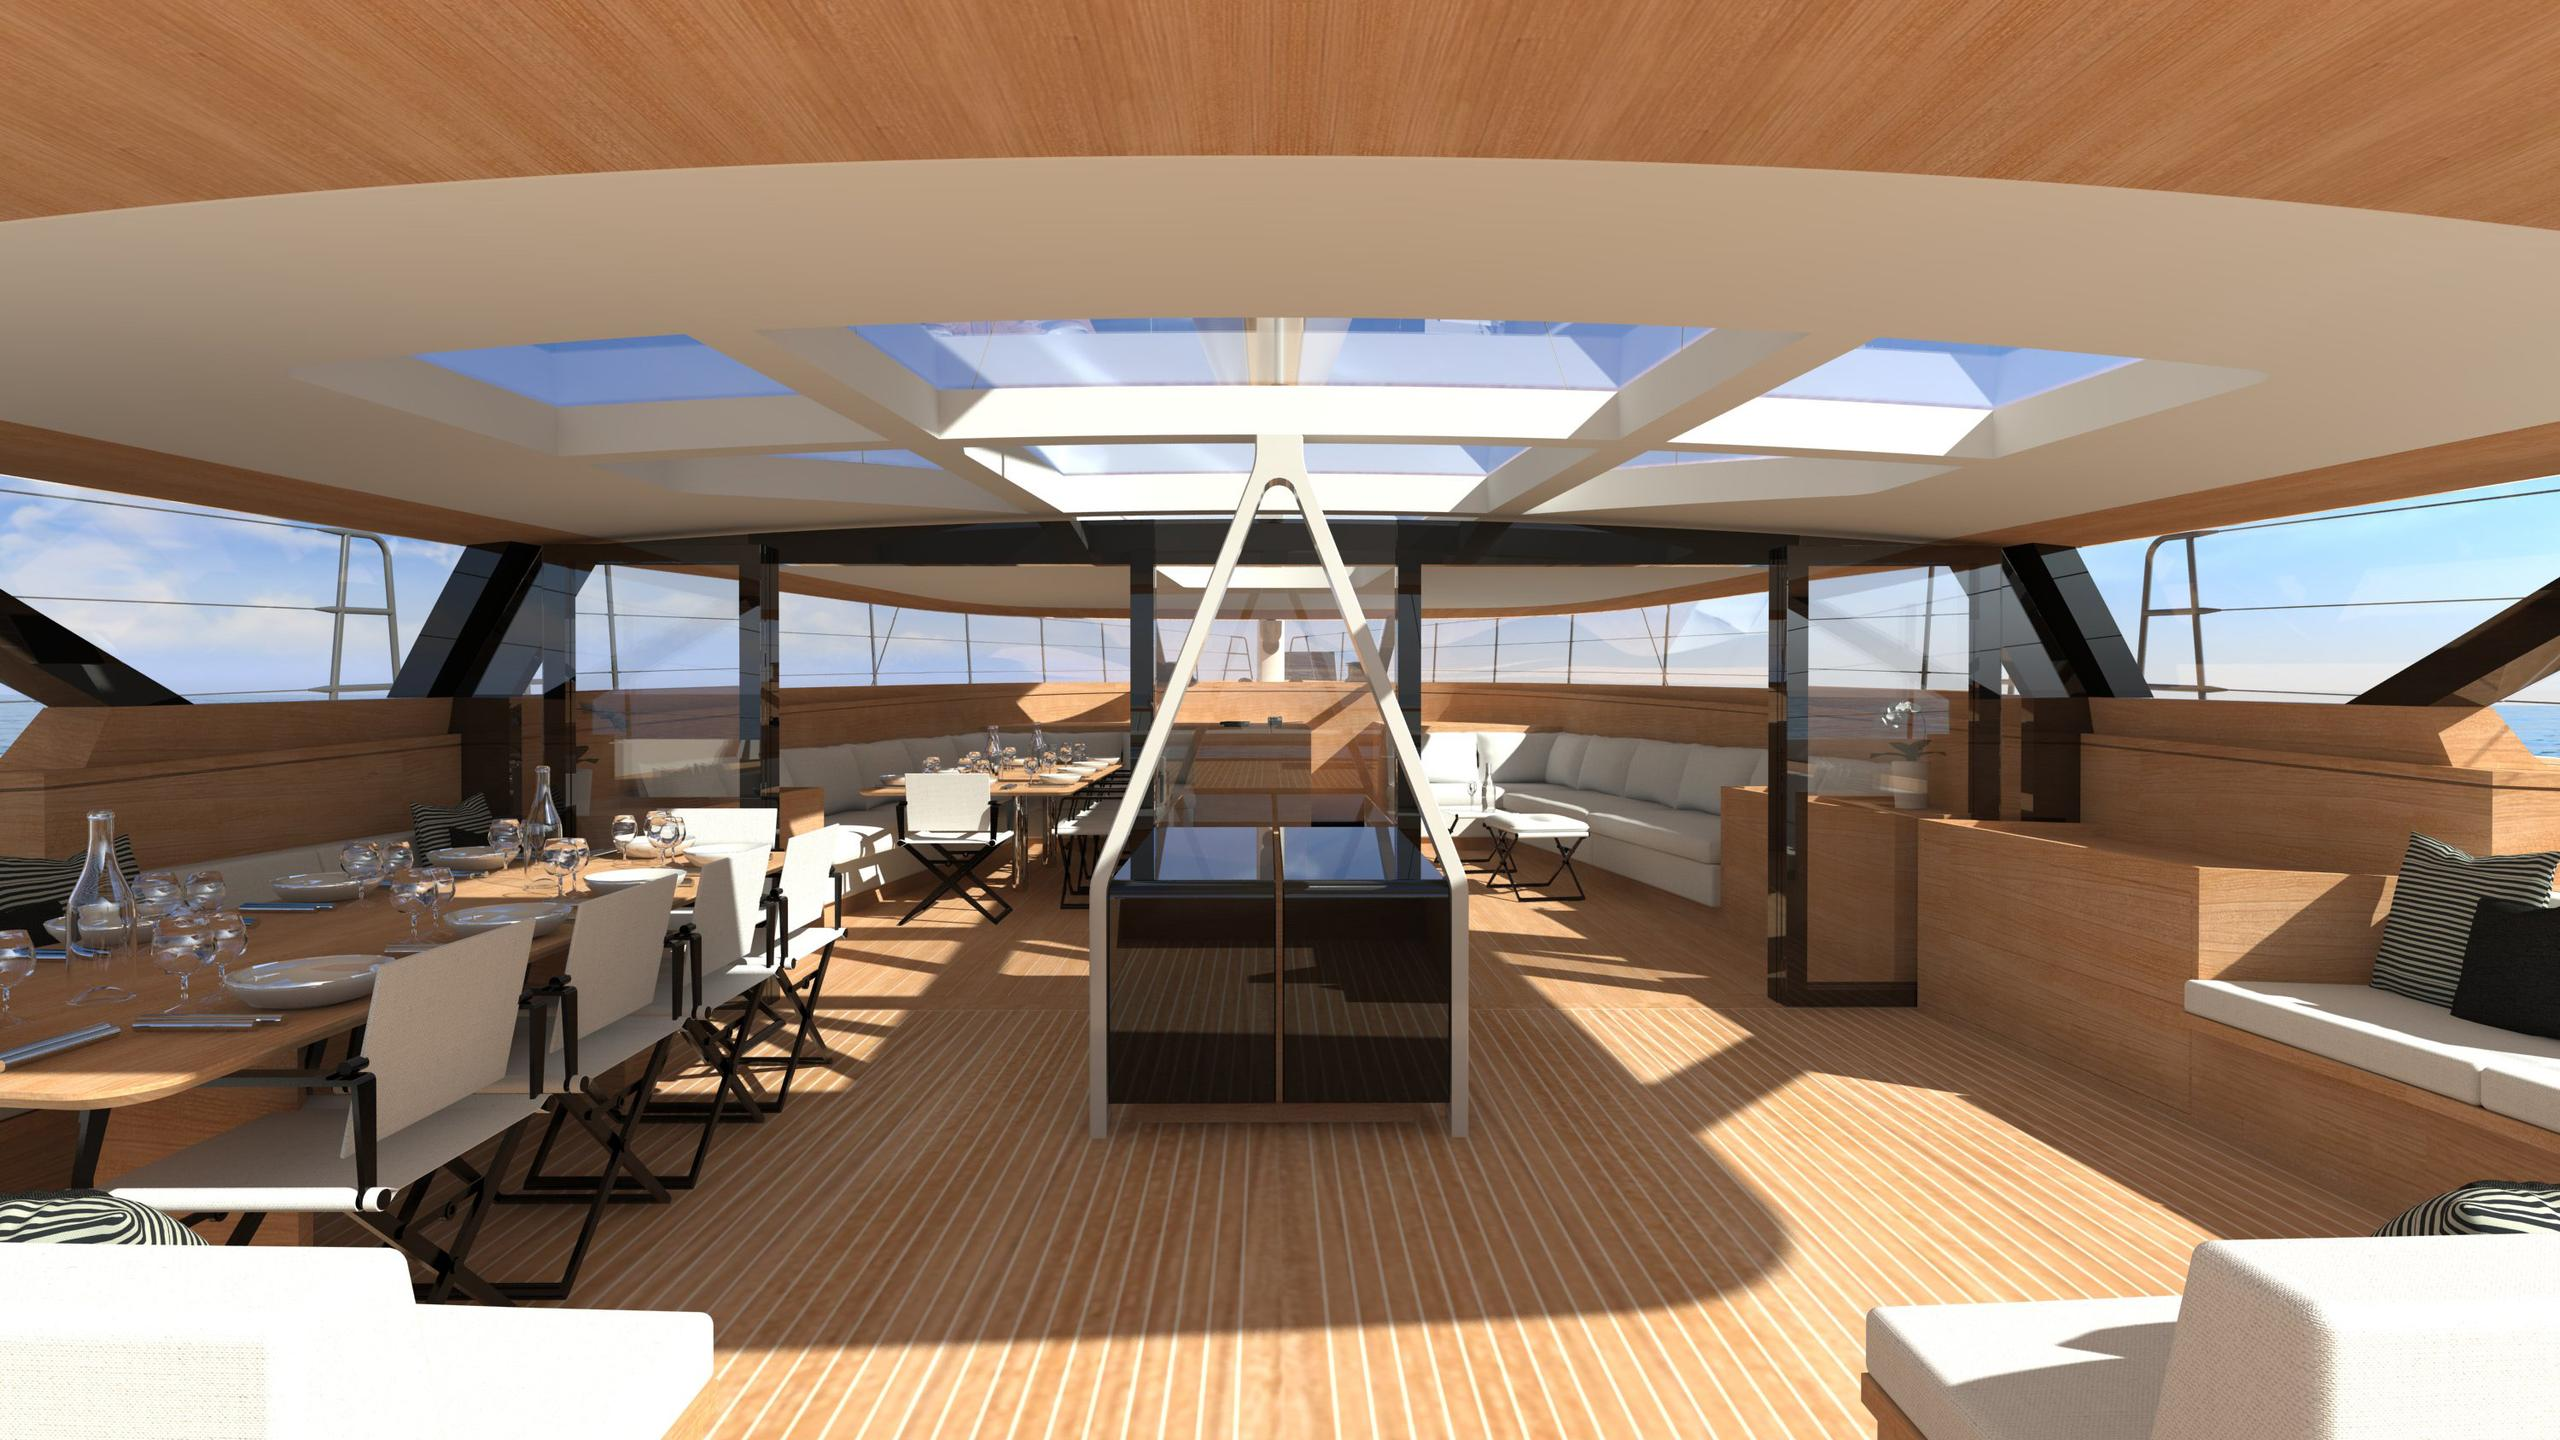 wally 145 persico marine 44m 2019 rendering living area